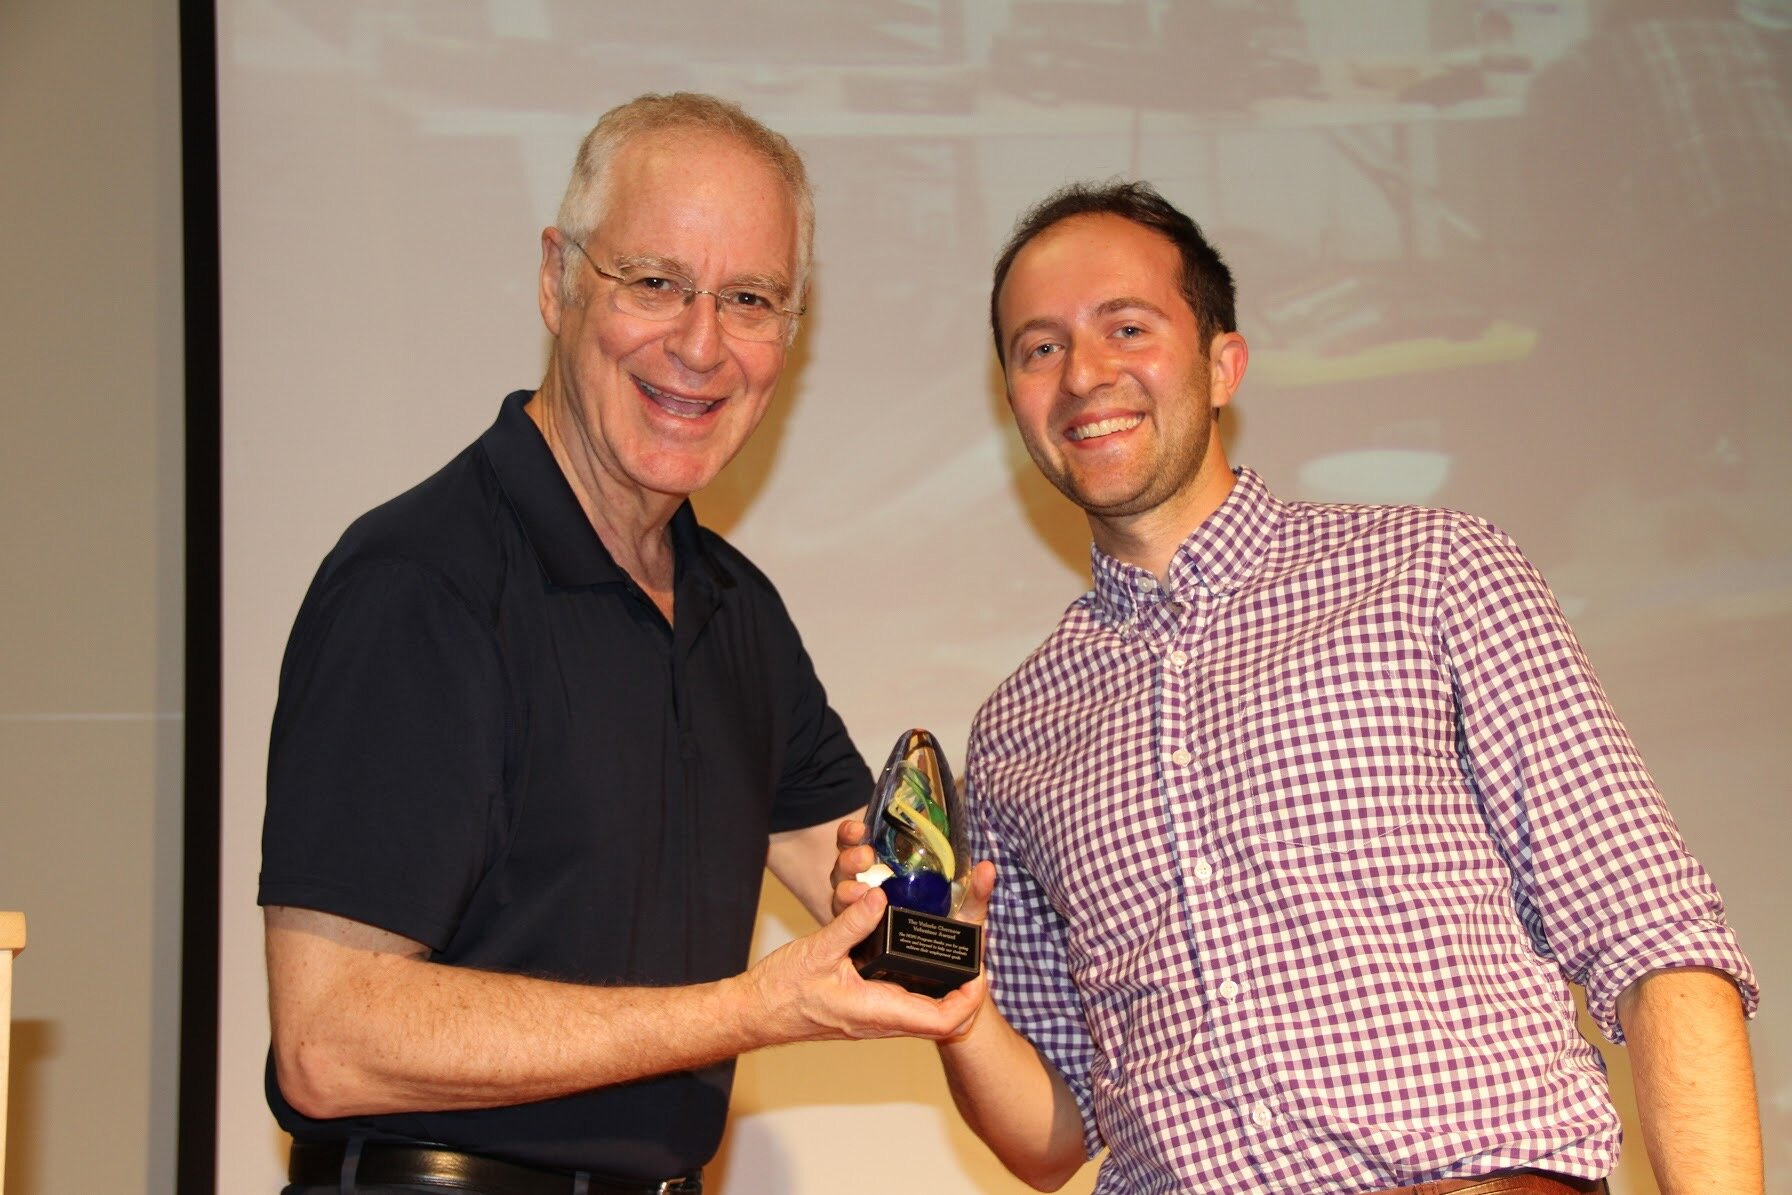 Winning an award from Ron Chernow